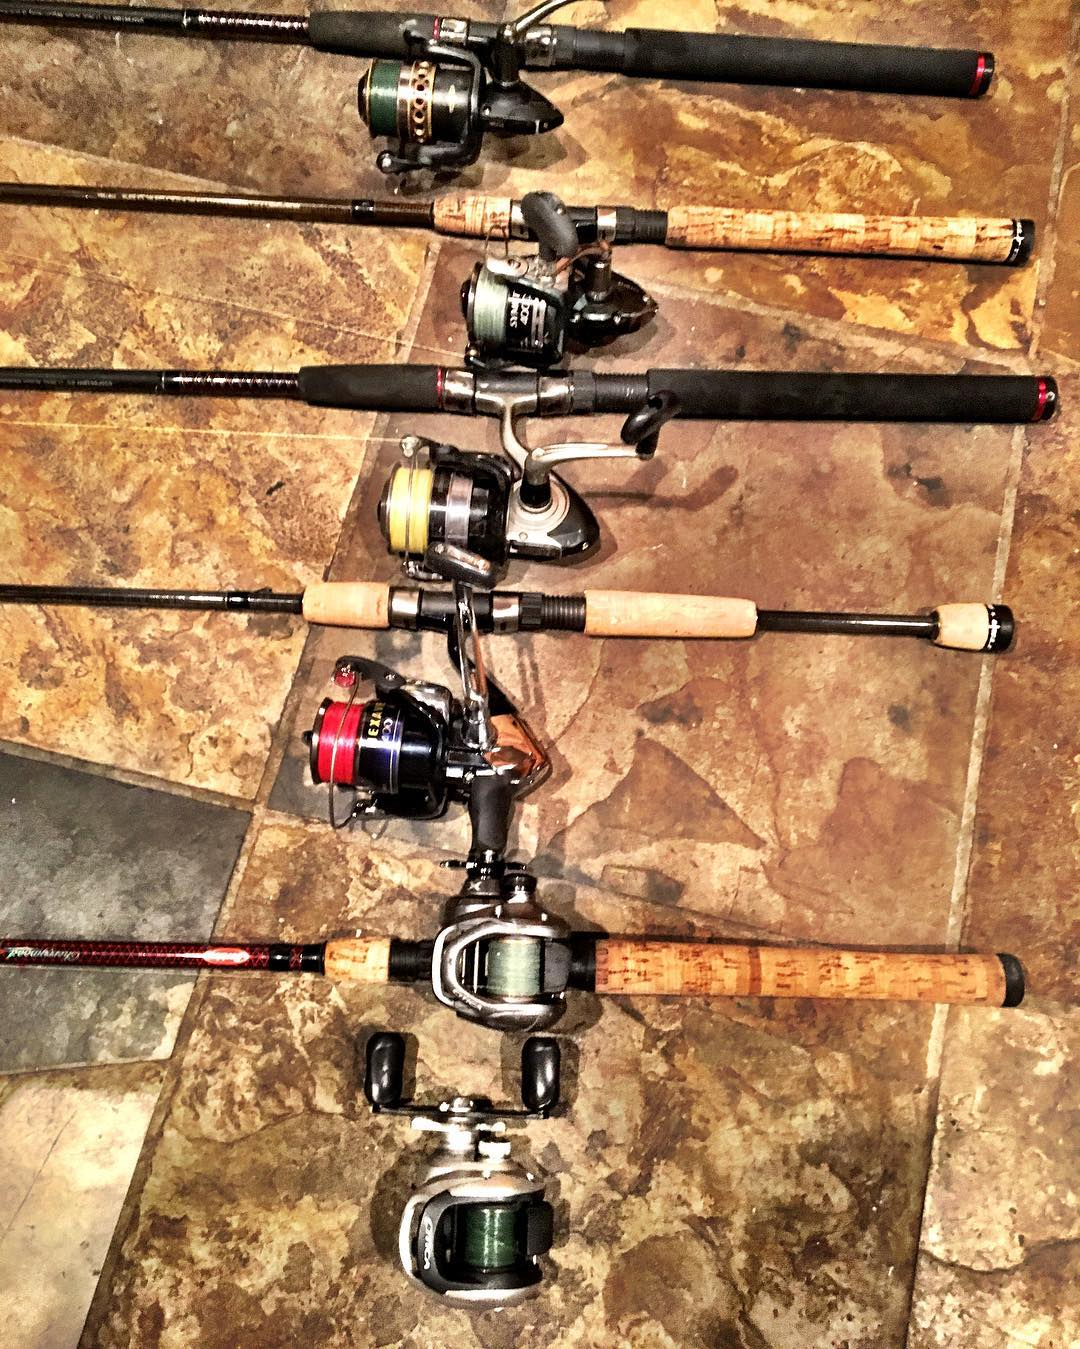 Cleaned up and ready to take my Dad out to catch some Bulls on light tackle tomo...